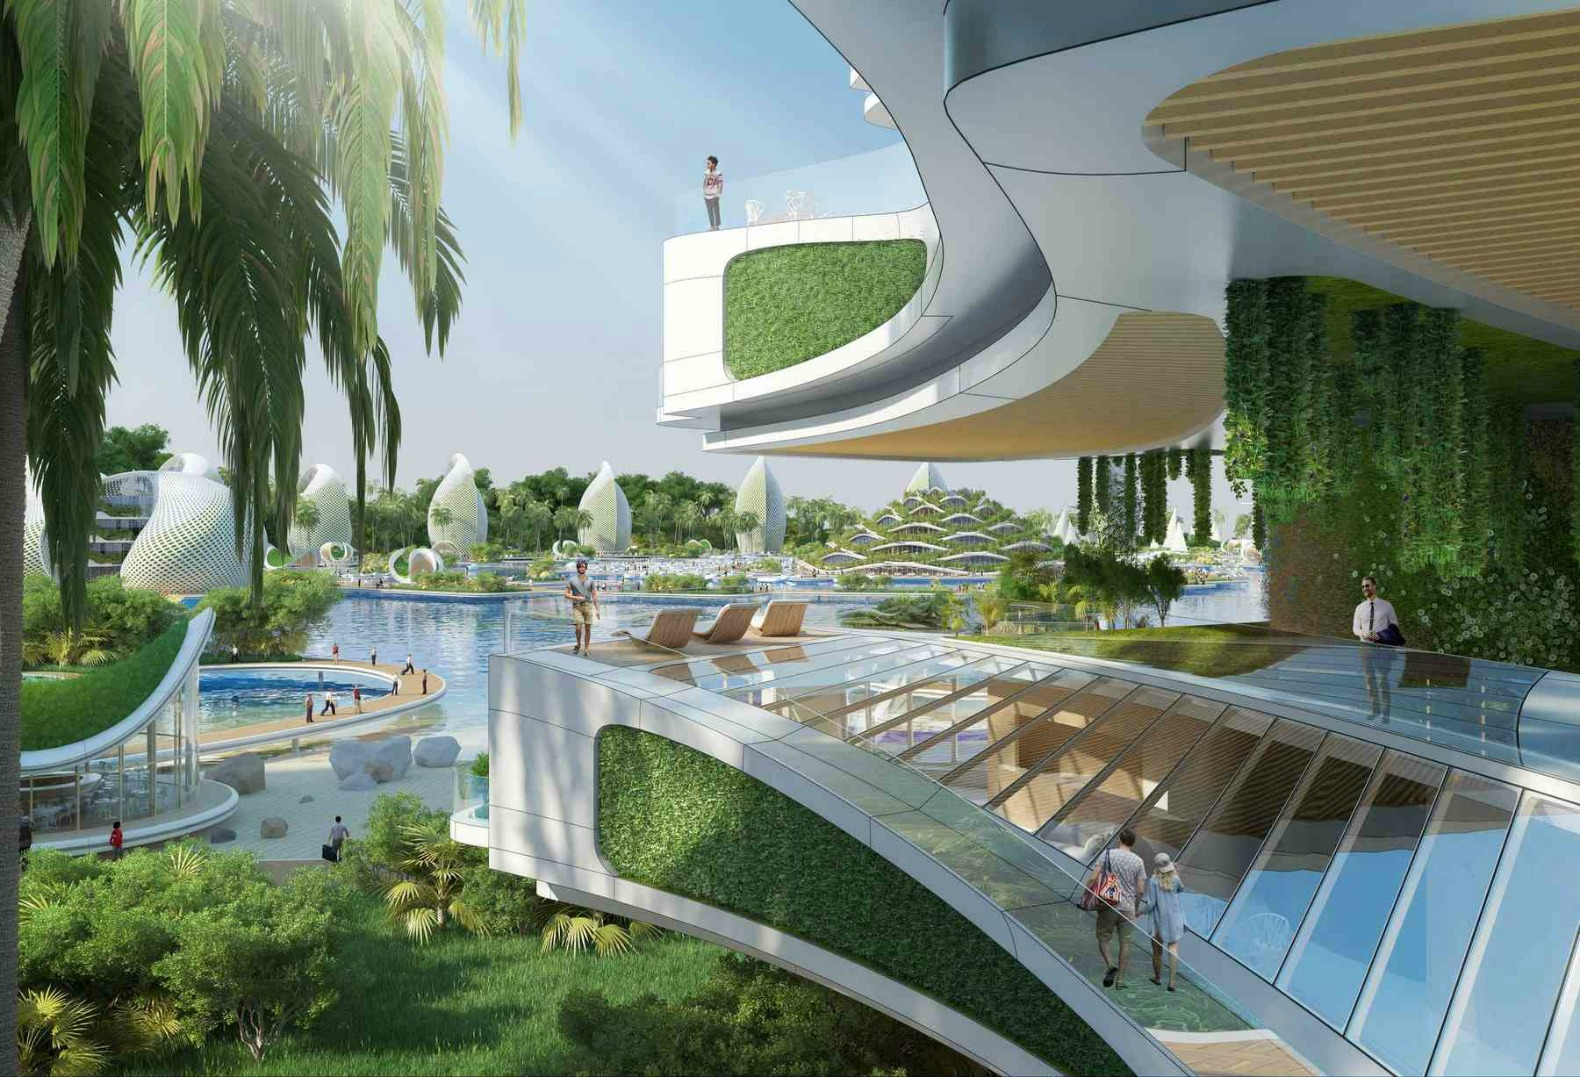 Vincent callebaut 39 s visionary eco resort for the - Green design ...